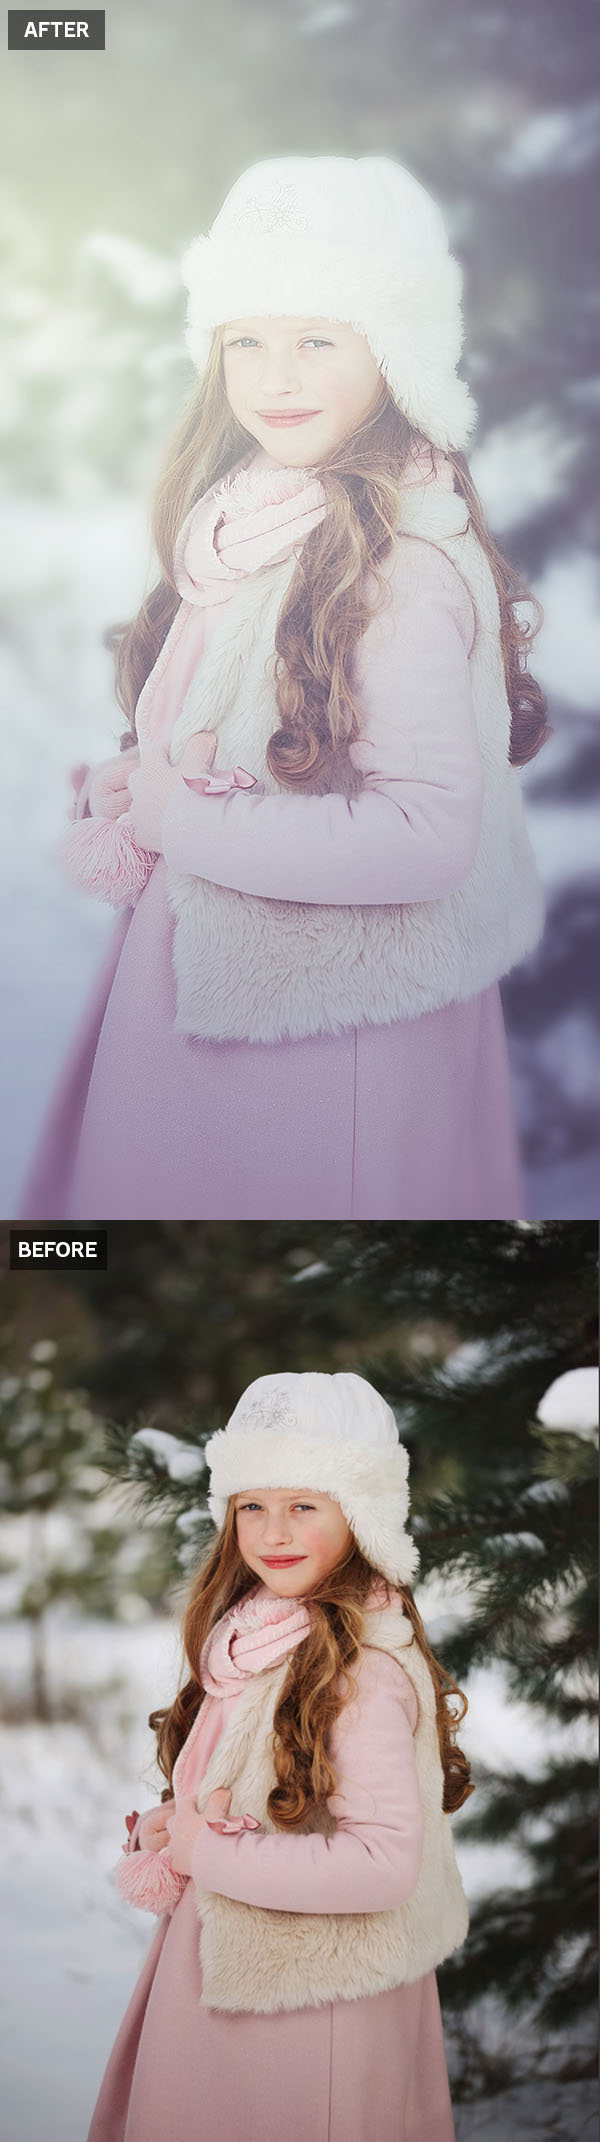 How to Create a Fog Effect Photoshop Action